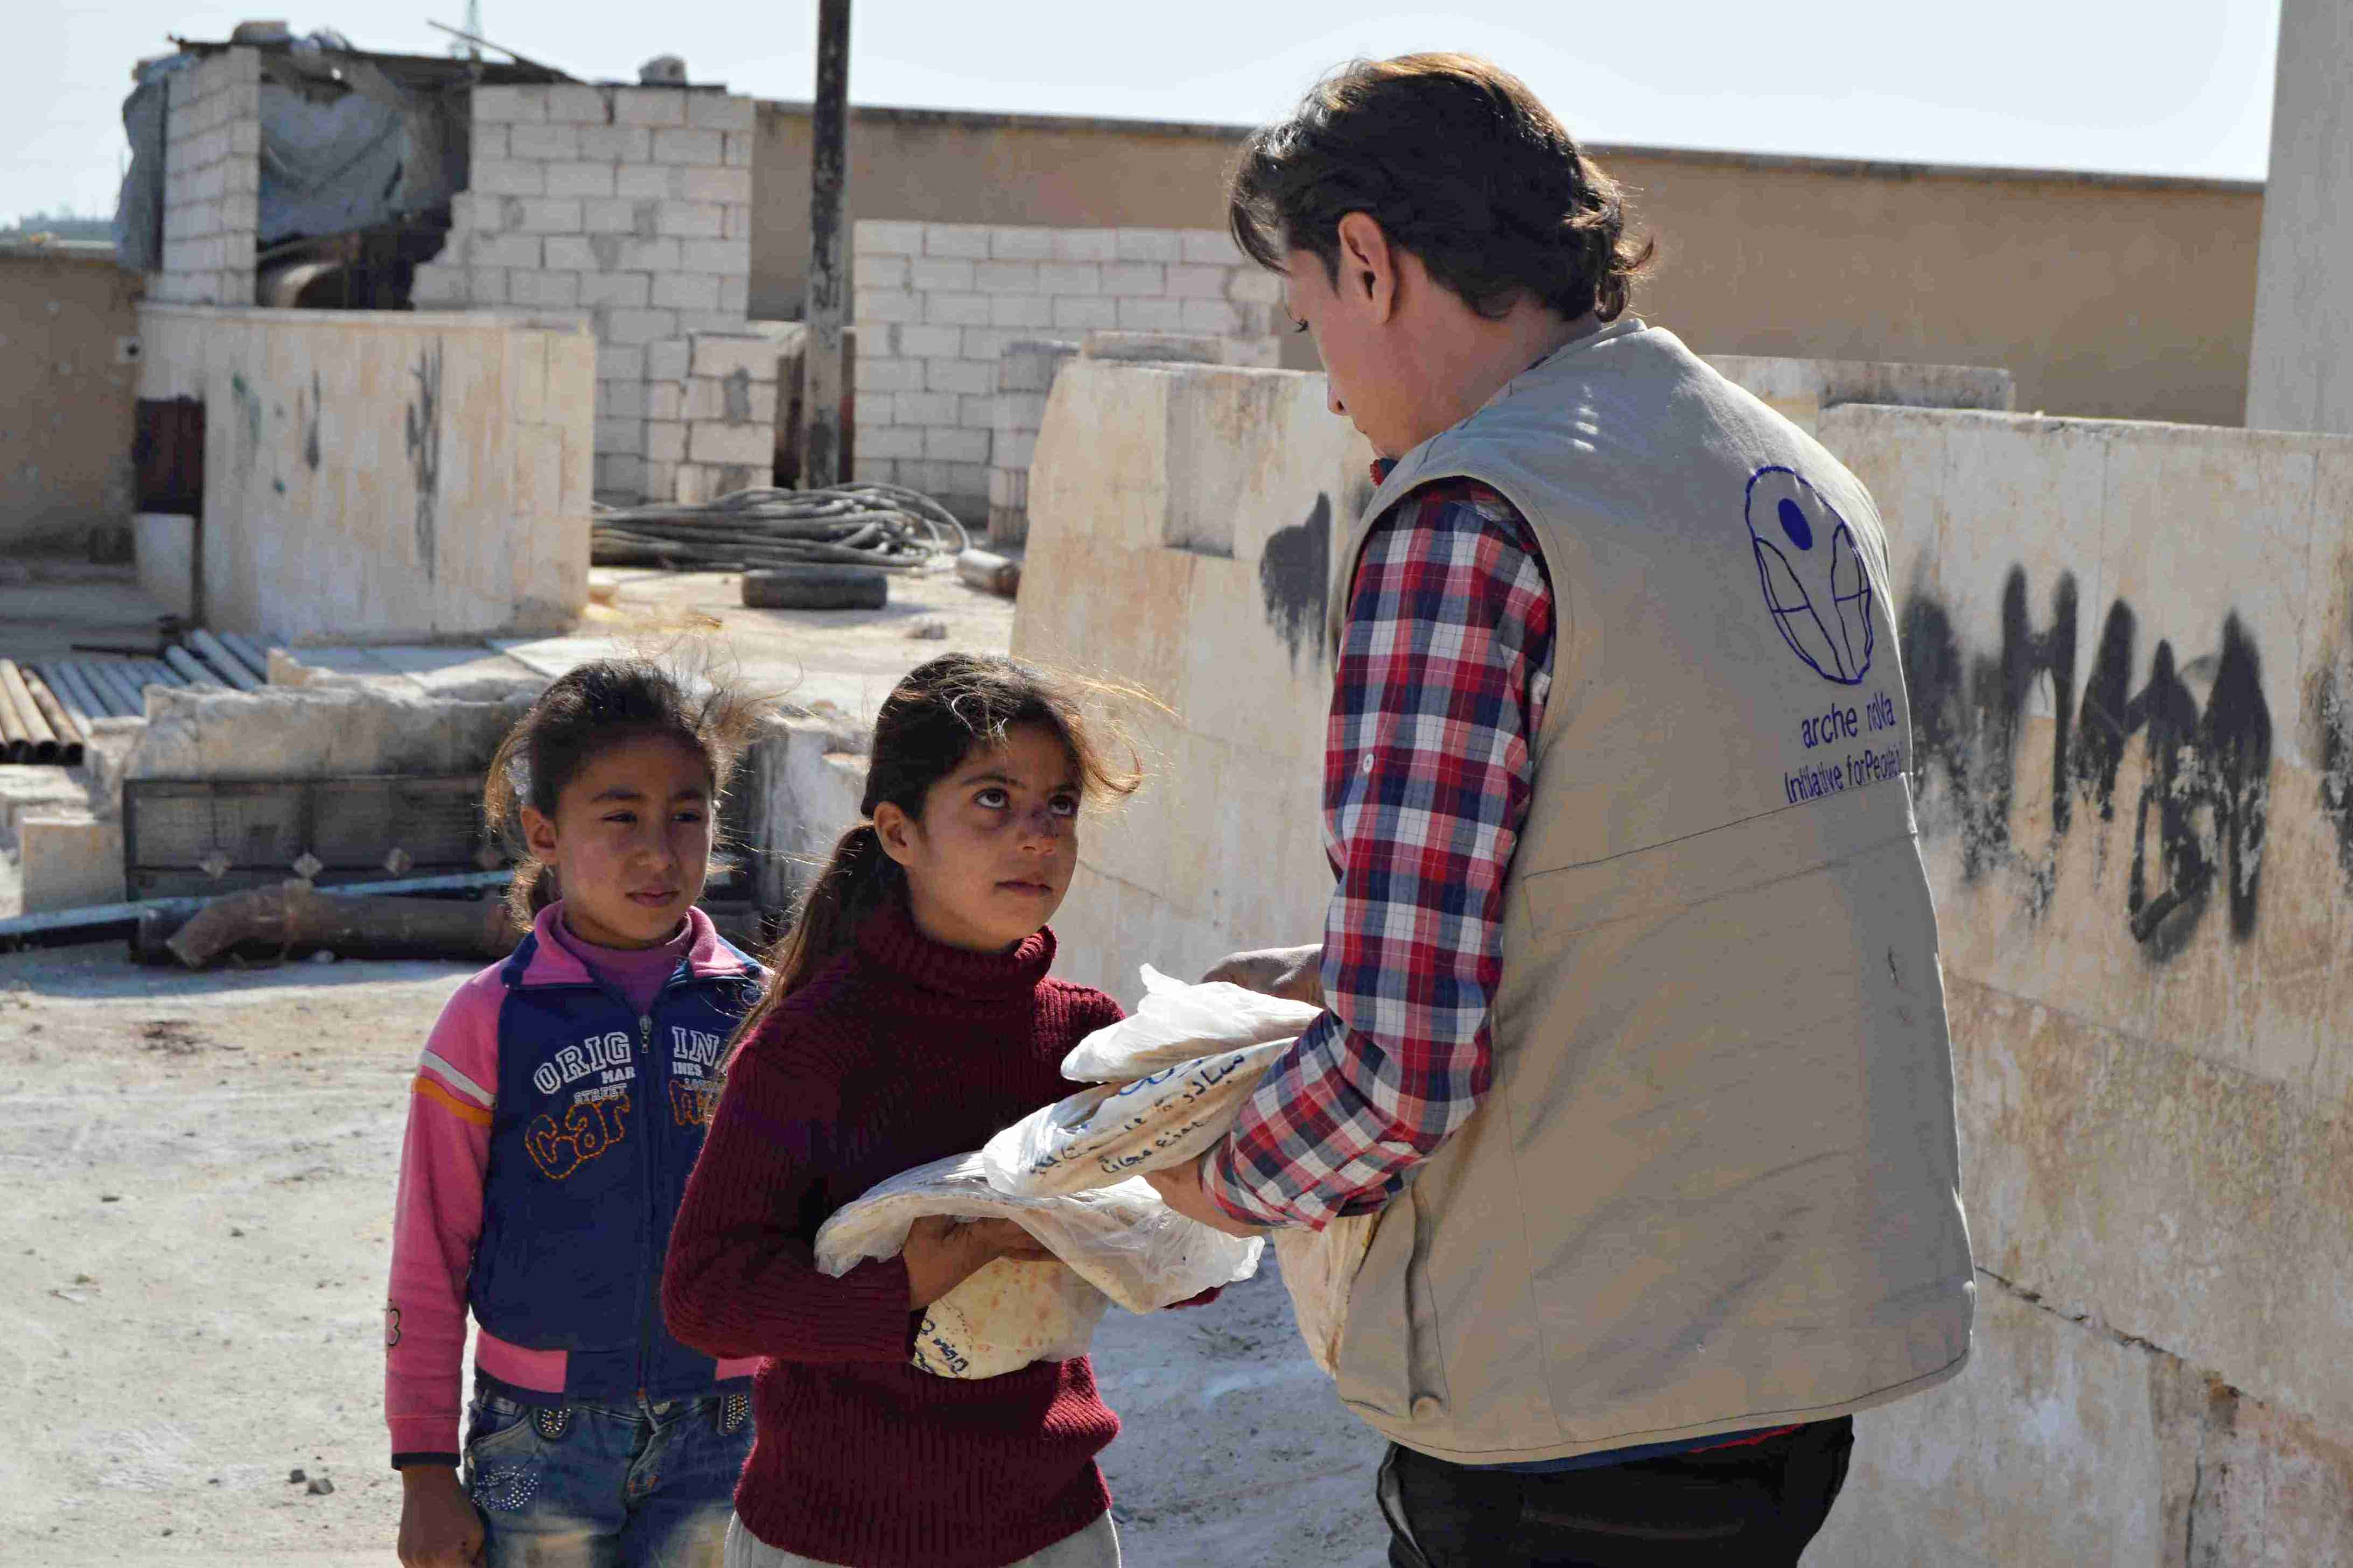 A member of our Syrian team gives bread to a young girl in front of an unfinished building